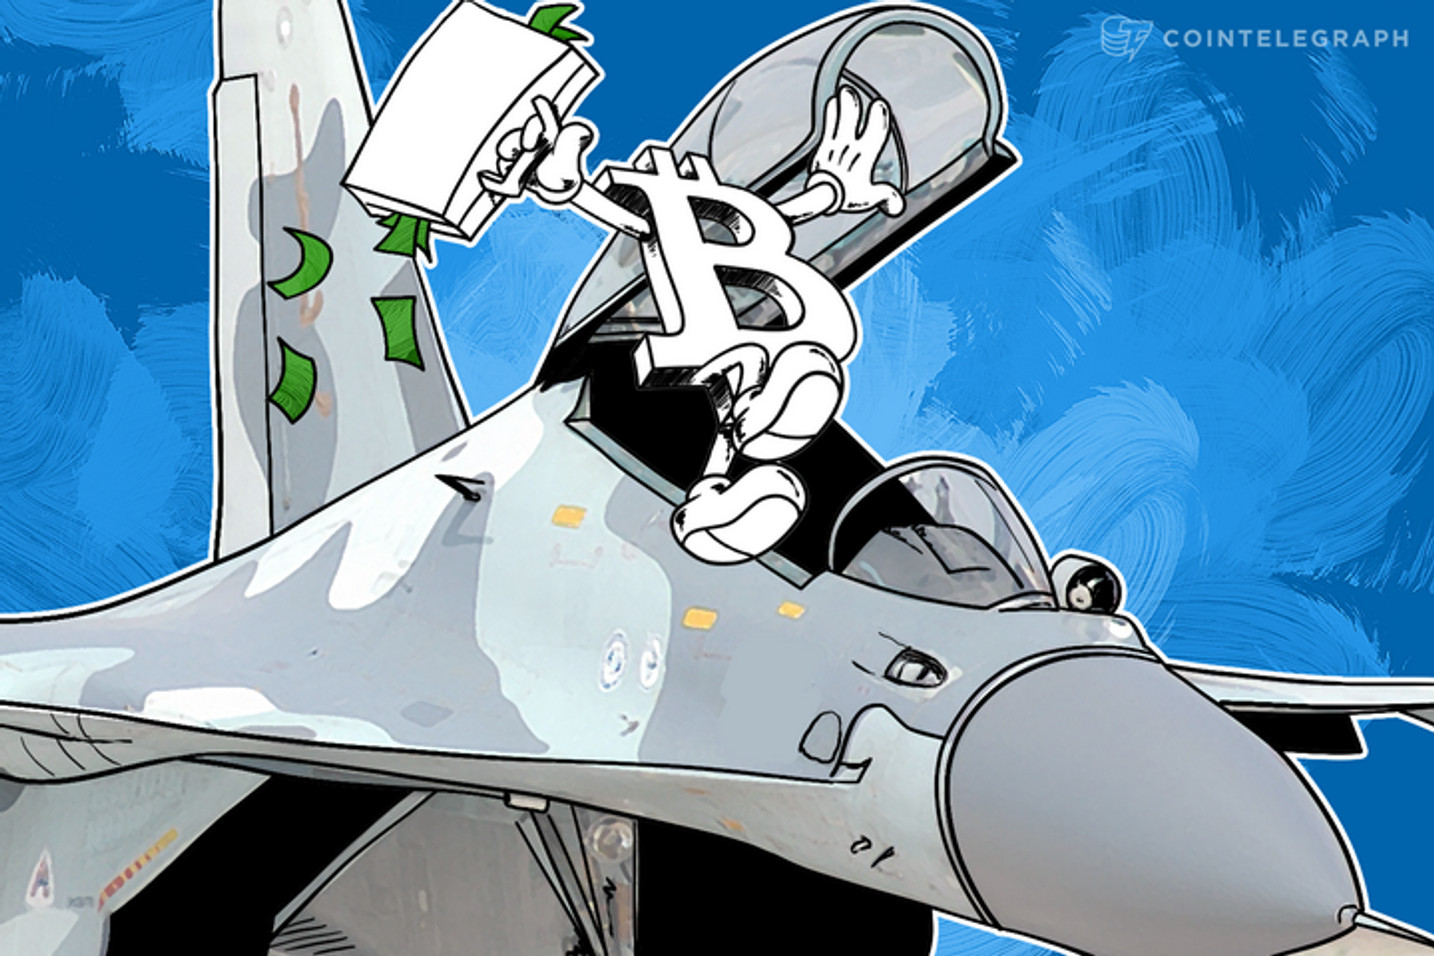 Bitcoins by Money Order Opens Up Financial Services to the World's Underbanked